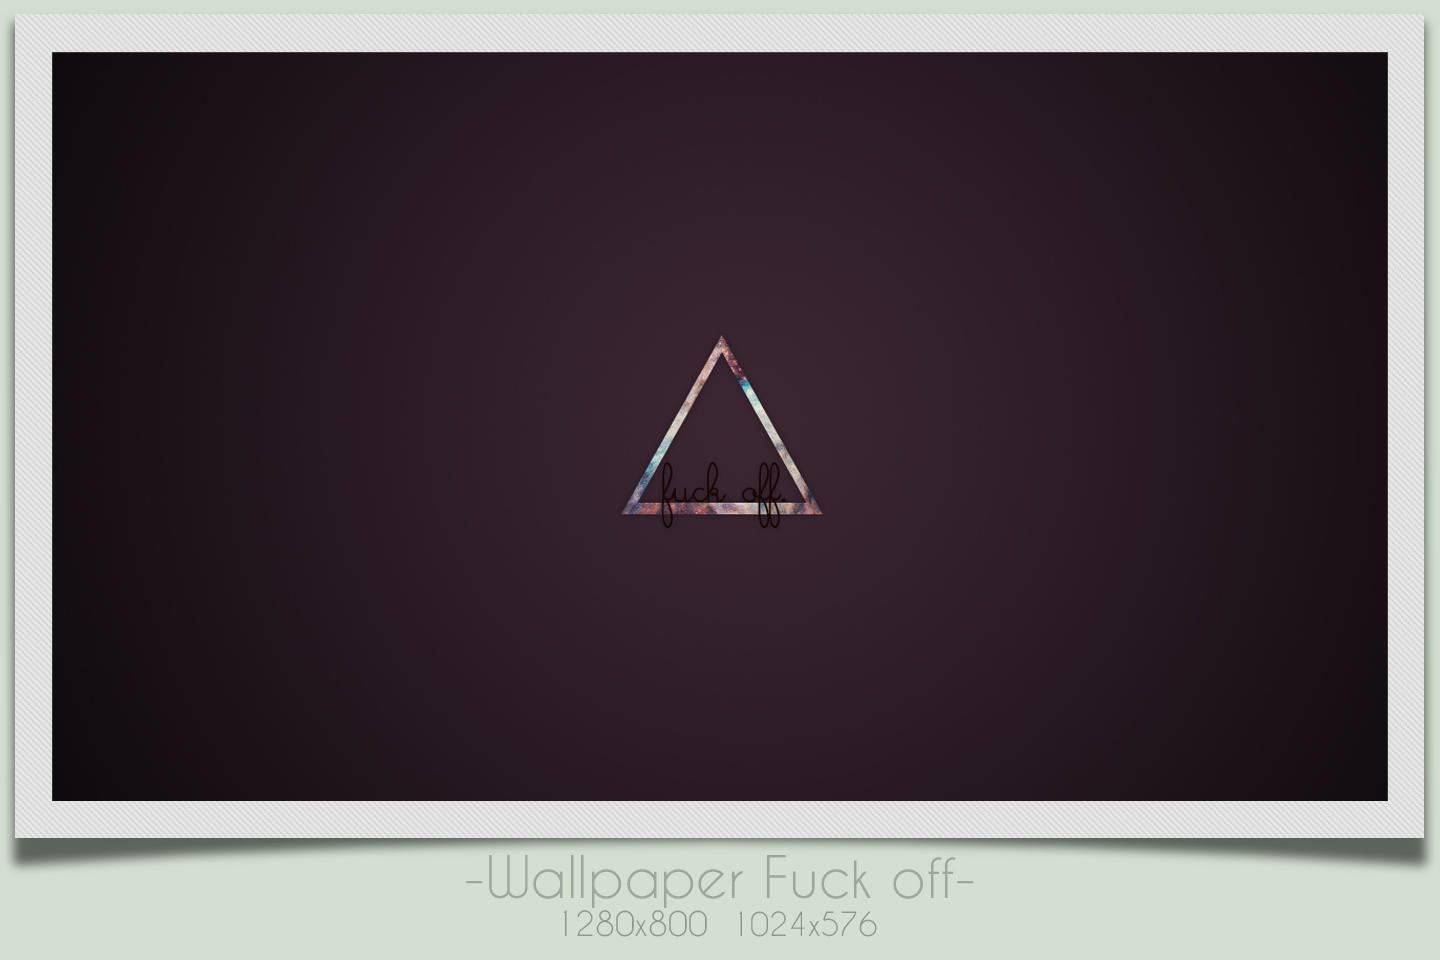 Fuck Off - Wallpaper by Ihavethedreamersdise